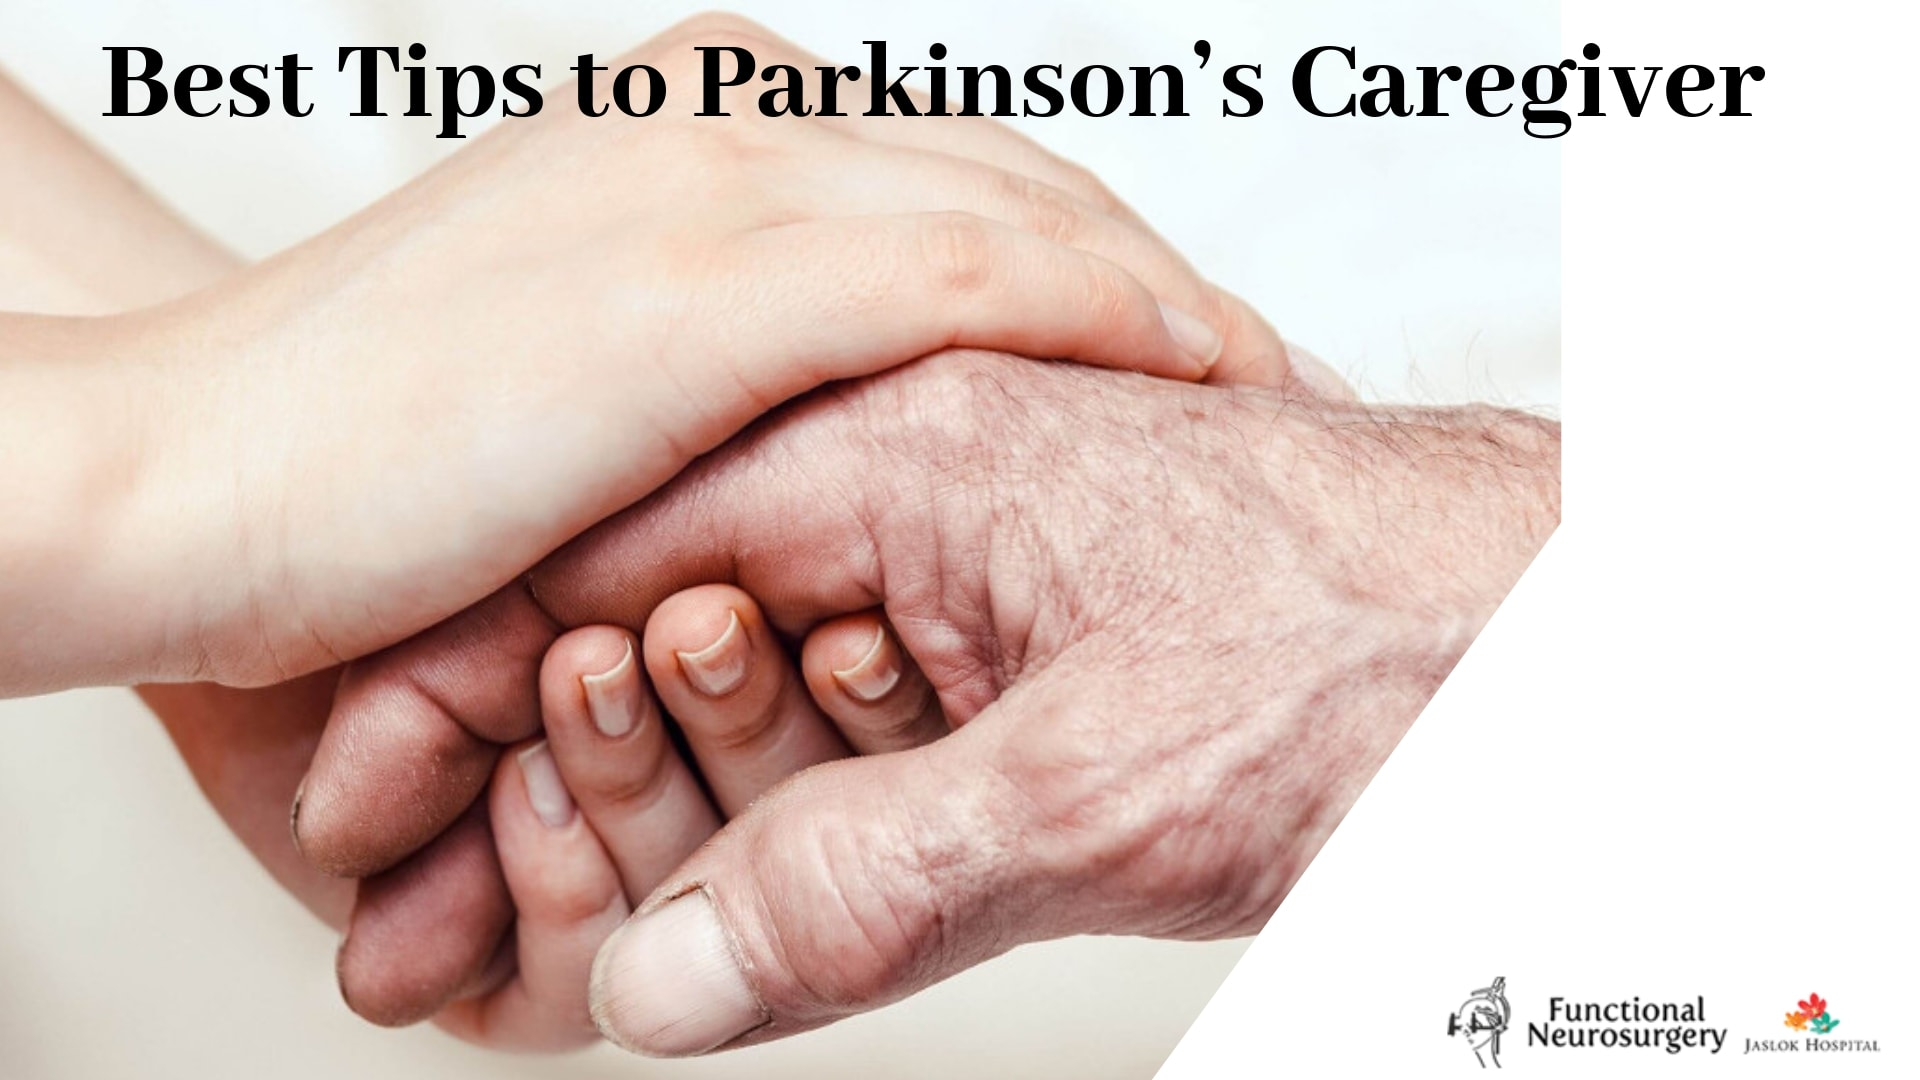 Best Tips to Parkinson's Caregiver